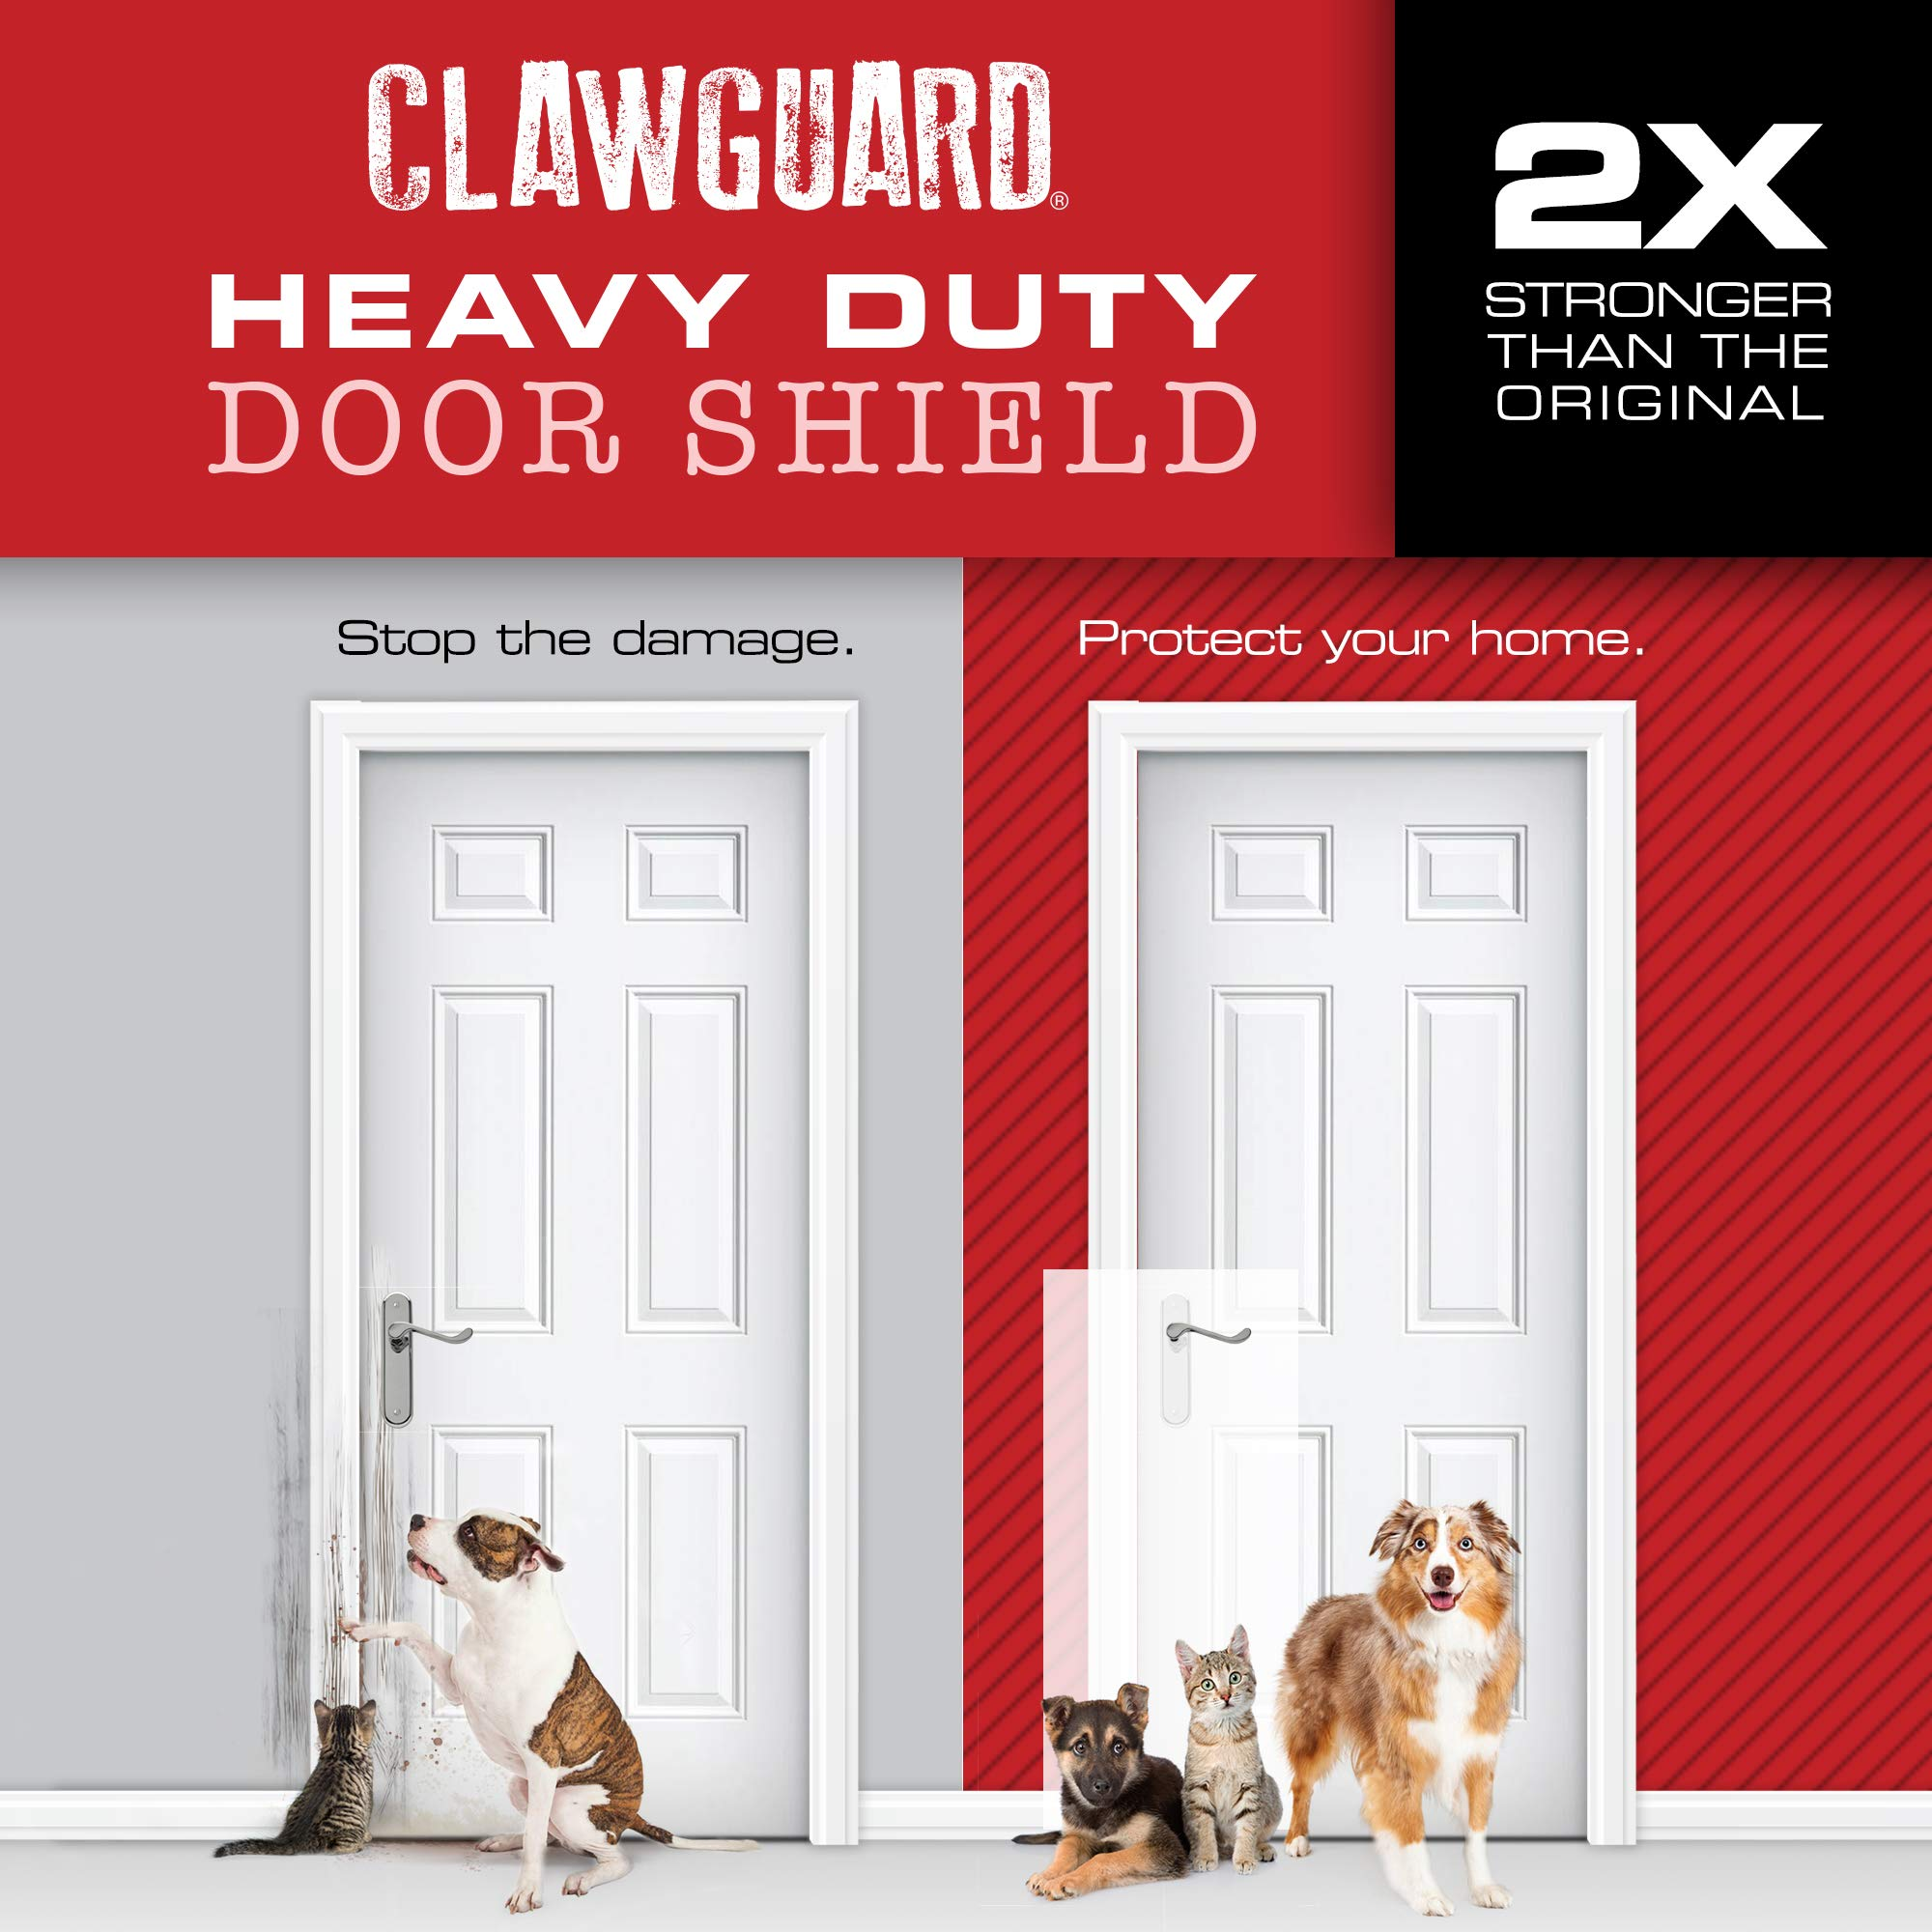 CLAWGUARD Heavy Duty Big Dog Scratch Shield - Ultimate Door, Frame & Wall Protection by CLAWGUARD